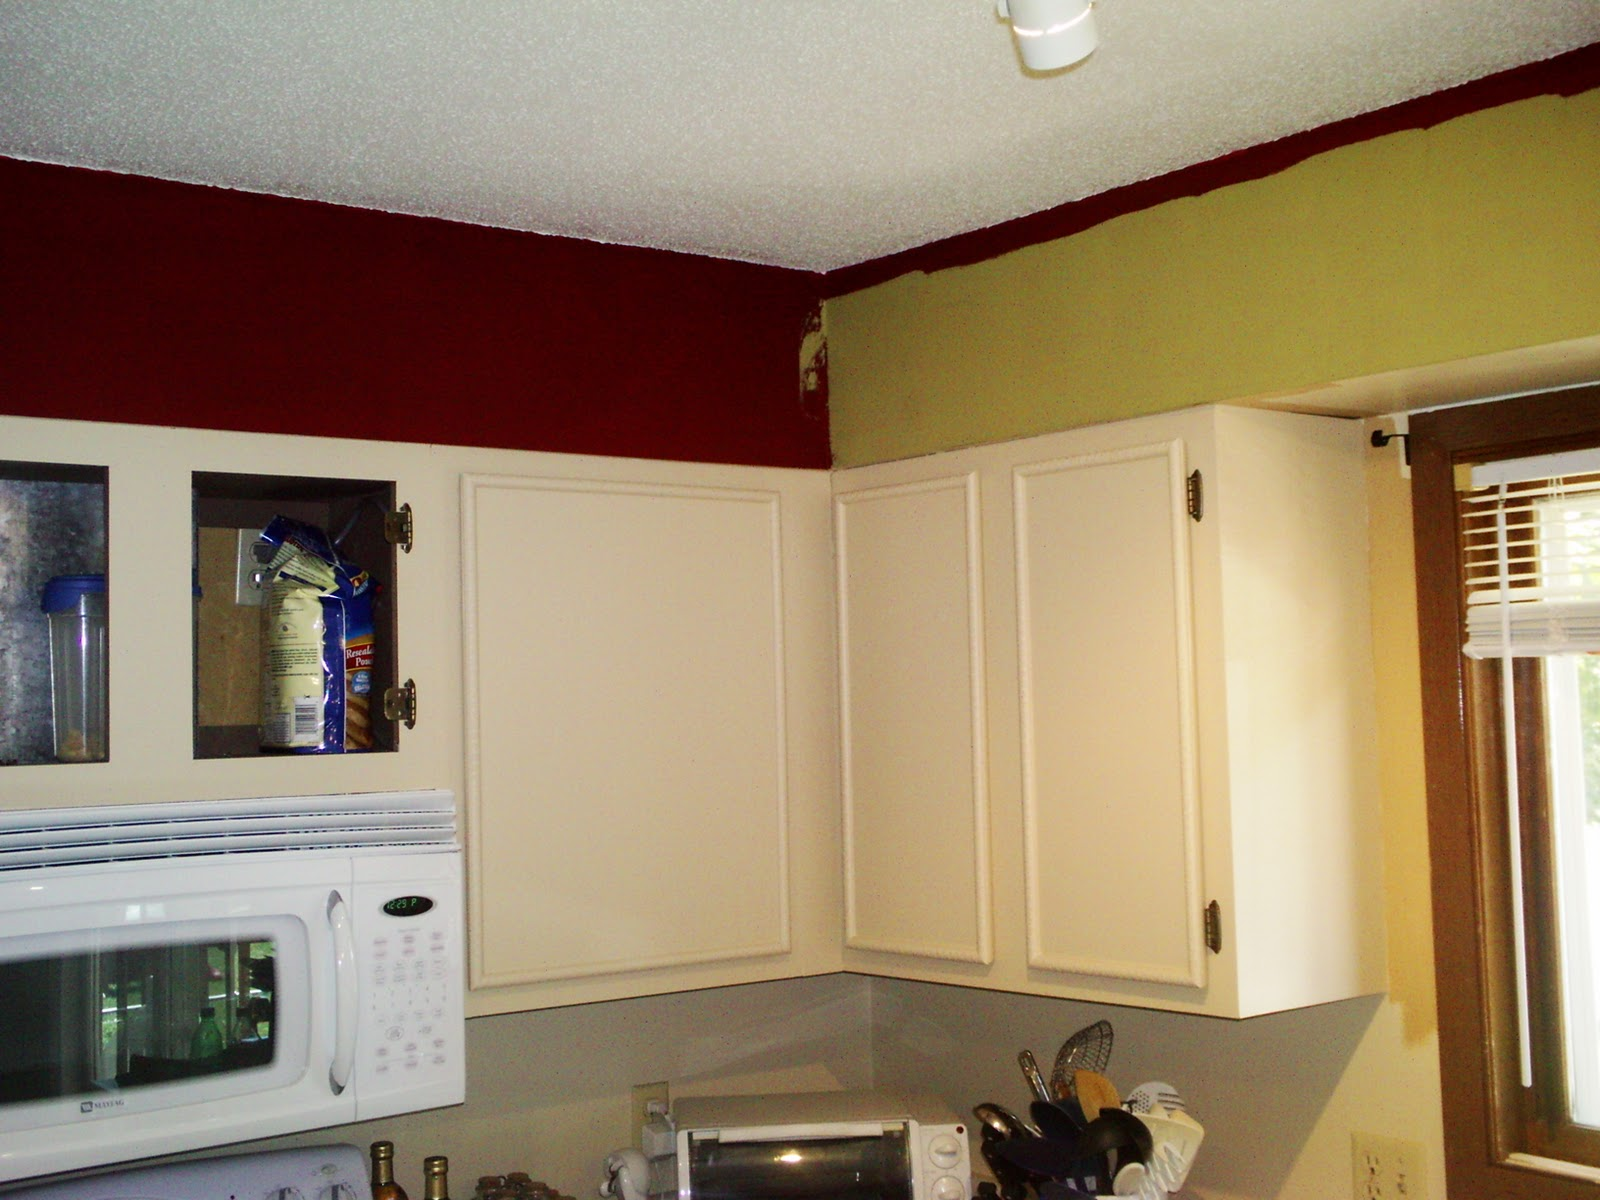 We also painted the walls an olive green.